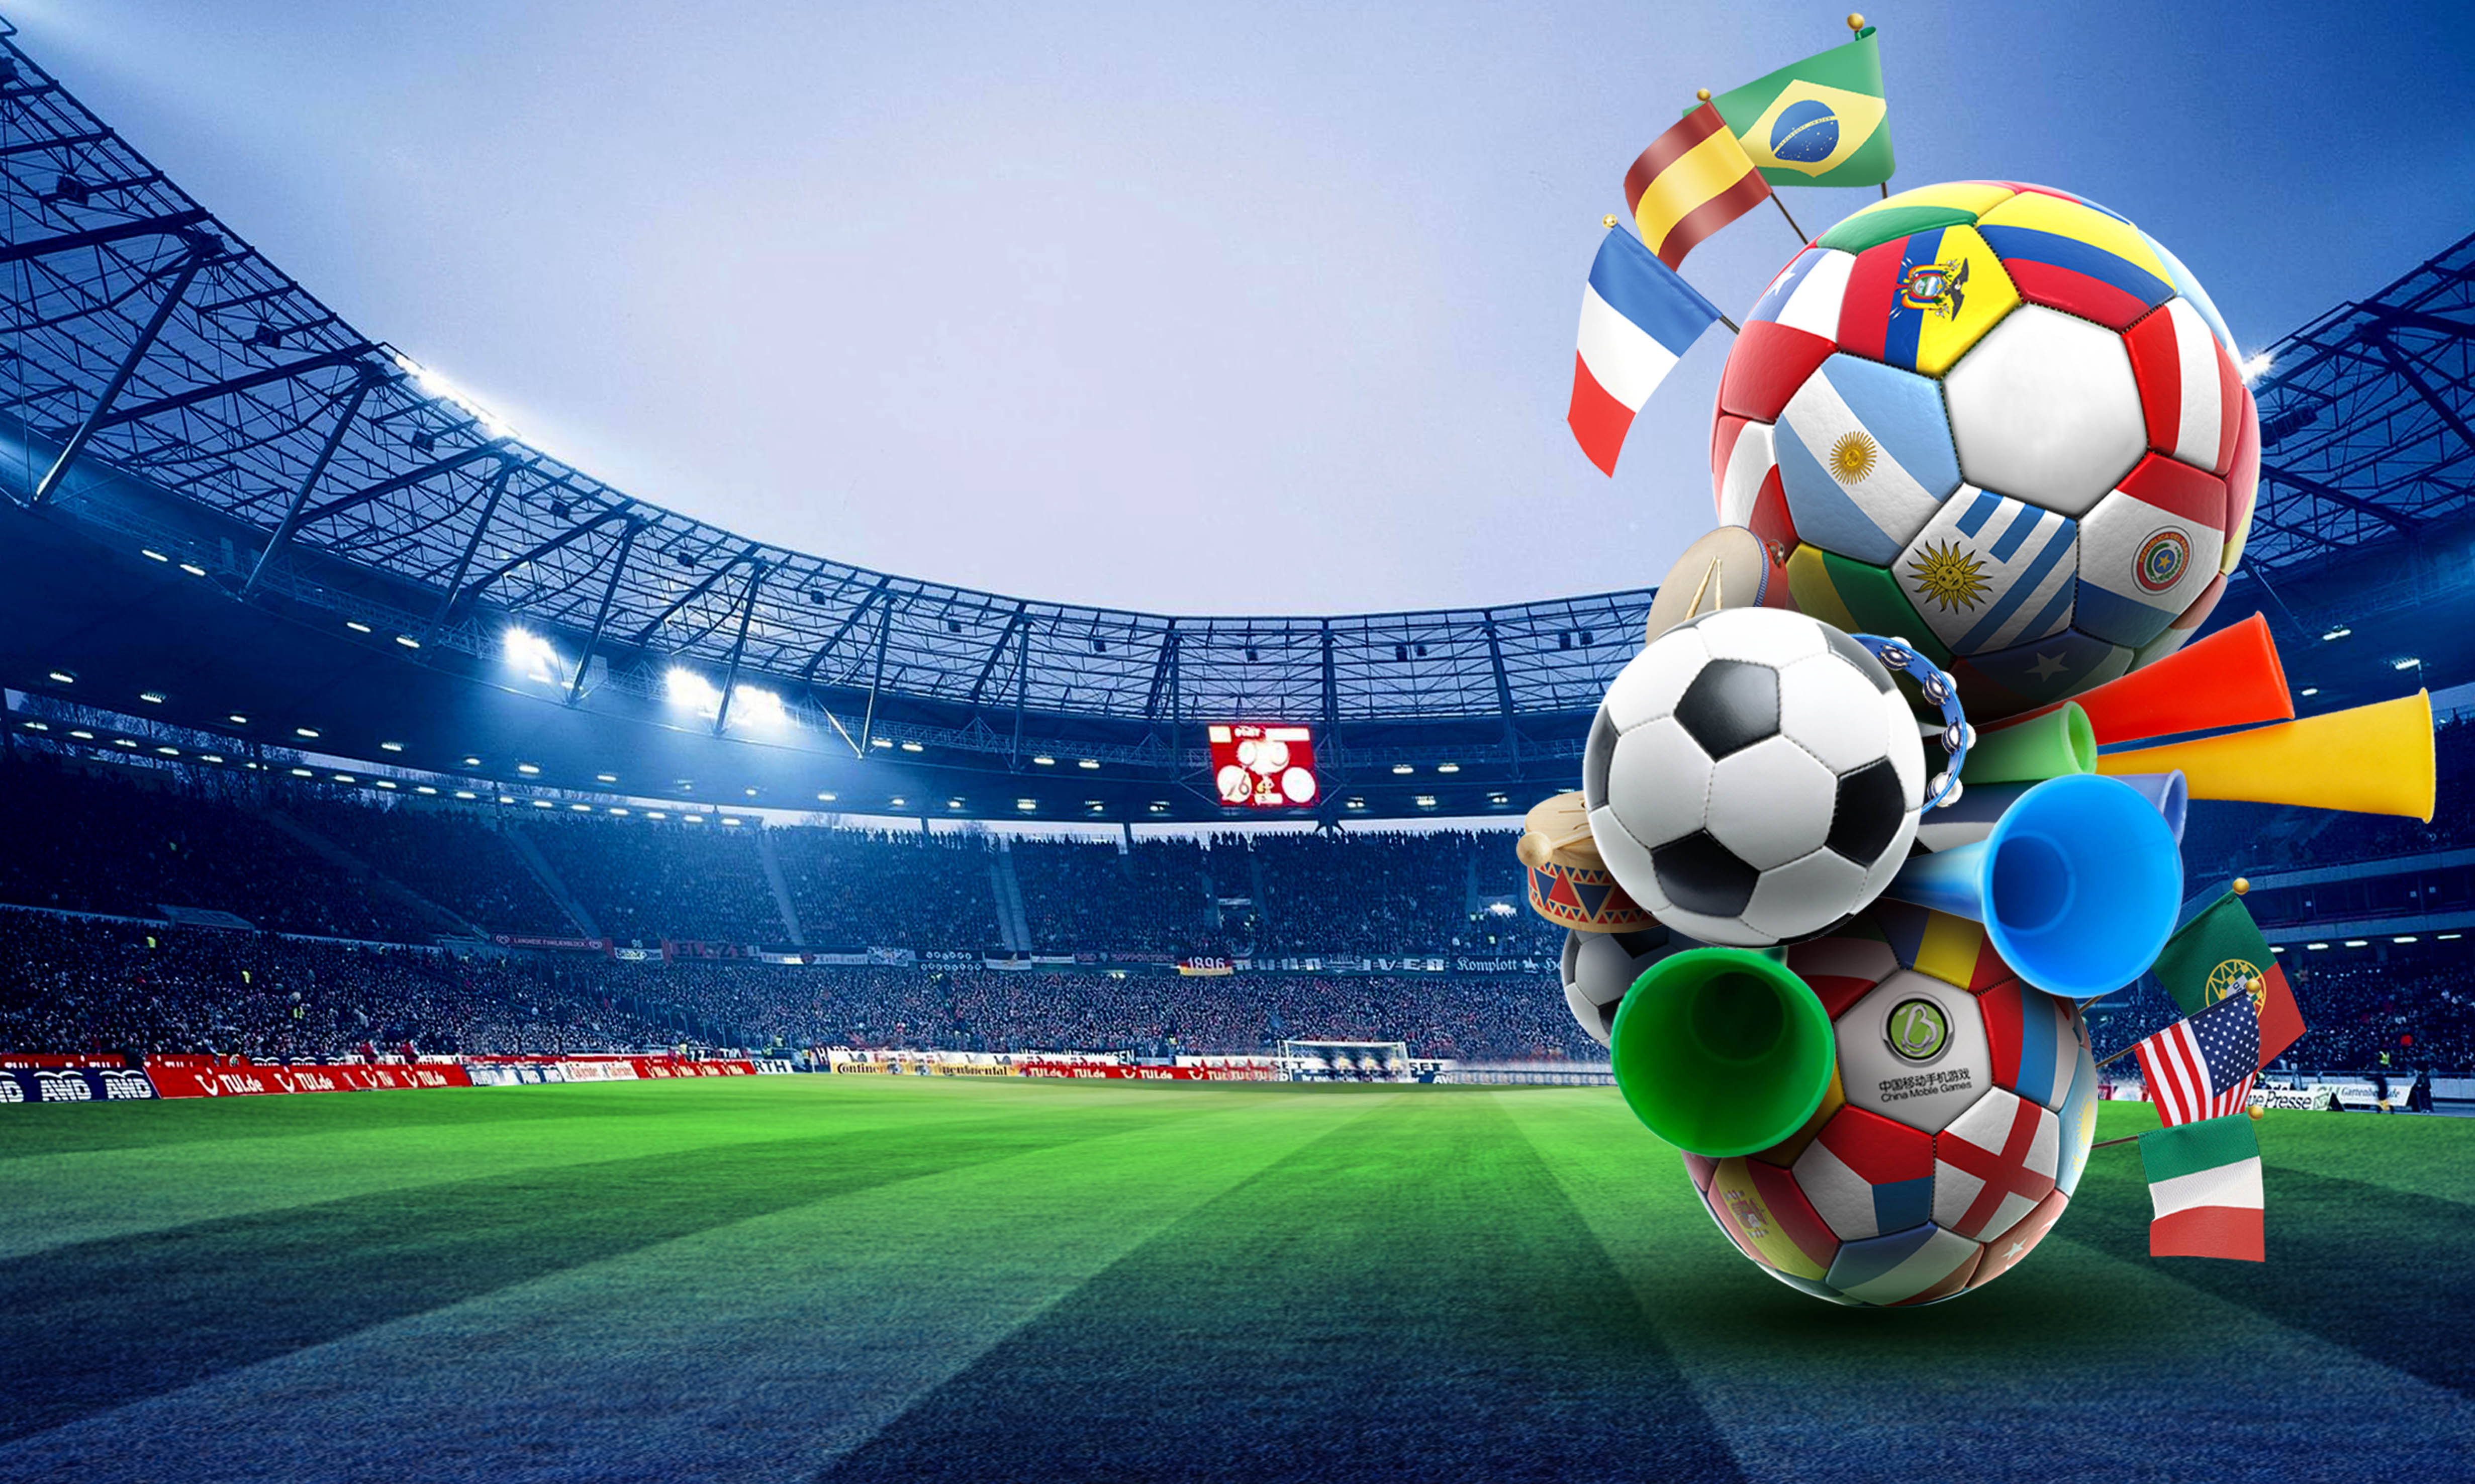 Cute Ribbons Wallpaper Posters Football Games Football Happy World Cup